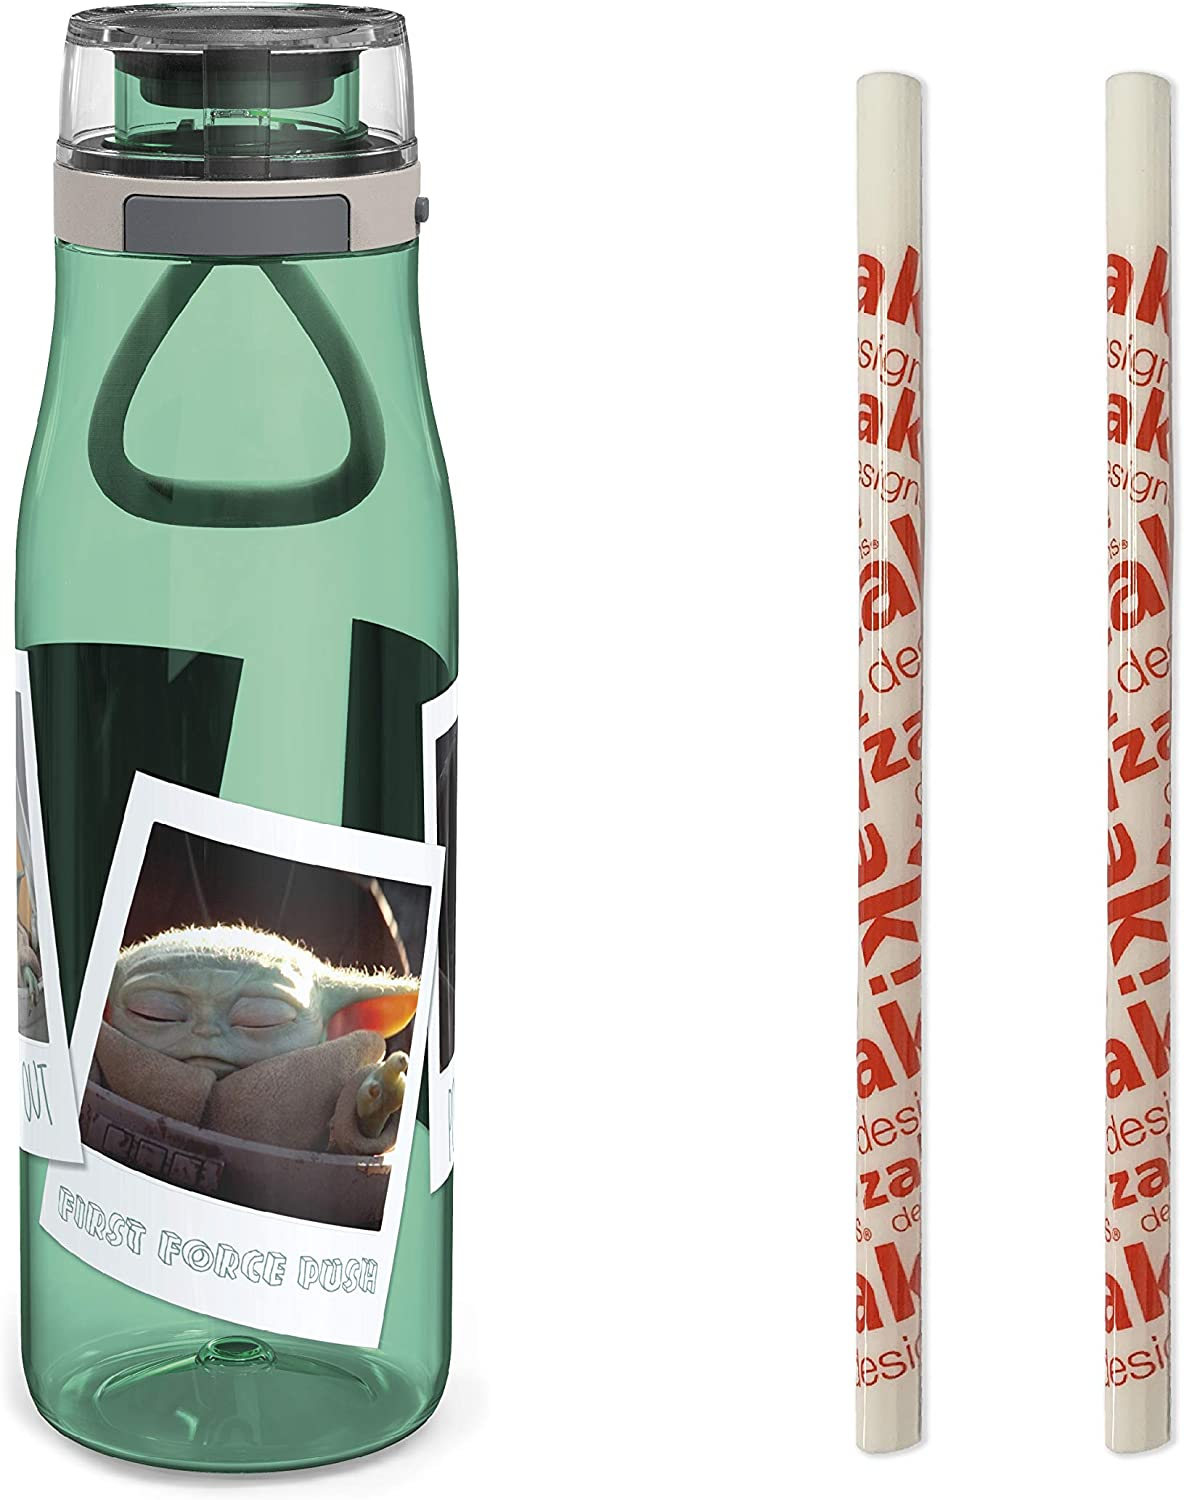 Zak Designs Star Wars The Mandalorian Plastic Water Bottle with Push Button Action, Locking Lid, and Portable Carry Loop, Includes 2 Reusable Straws, (25oz, Baby Yoda/The Child, BPA-Free)